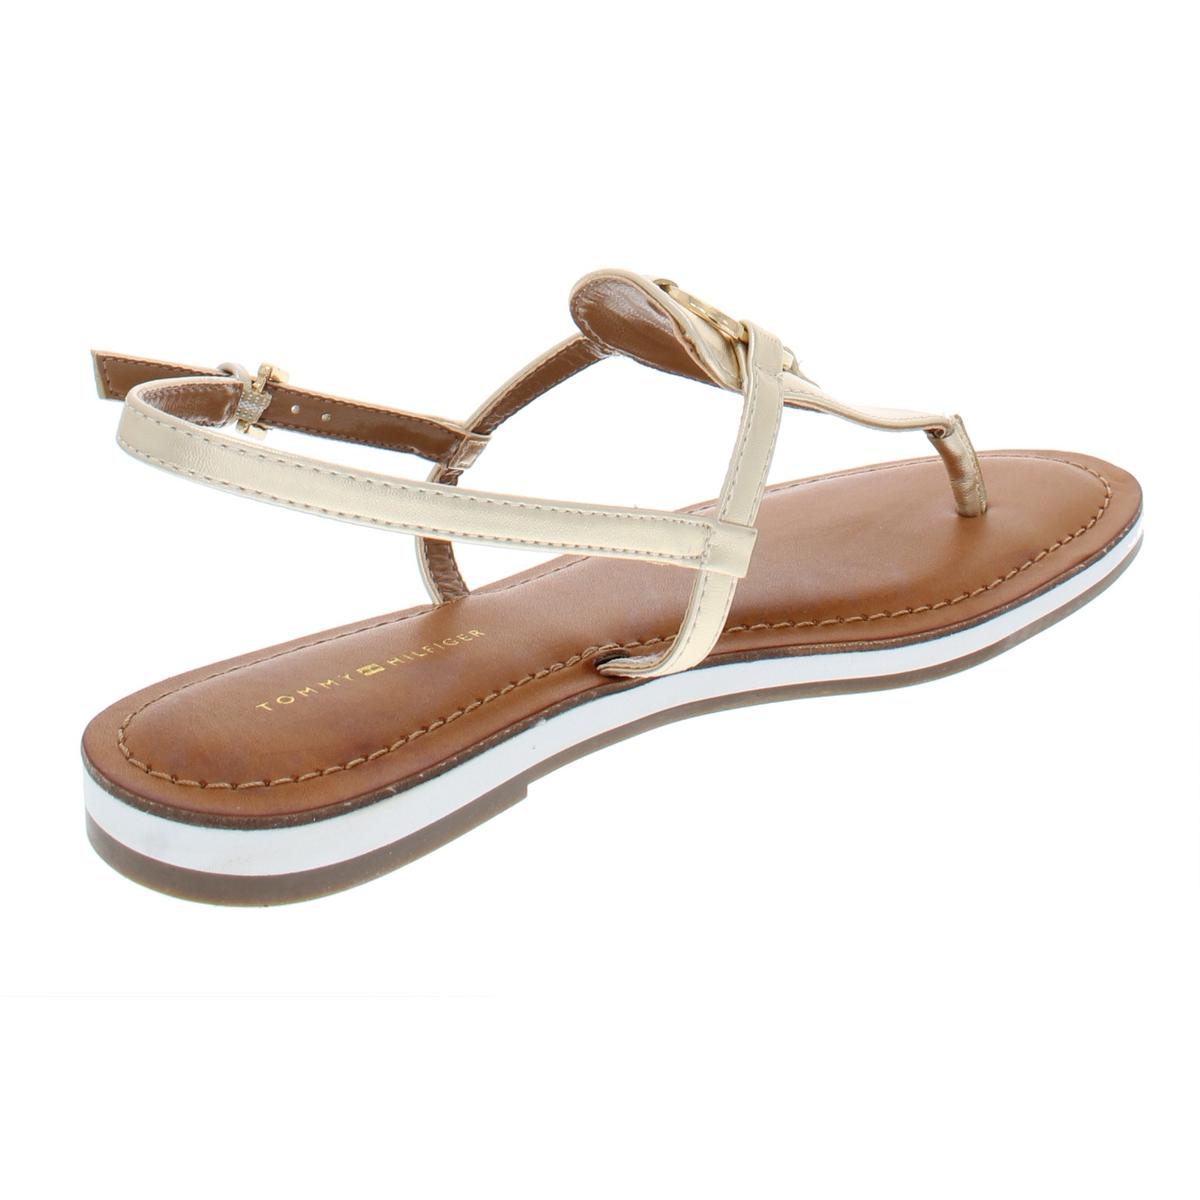 Tommy-Hilfiger-Womens-Genei-Metallic-T-Strap-Thong-Sandals-Shoes-BHFO-7834 thumbnail 6